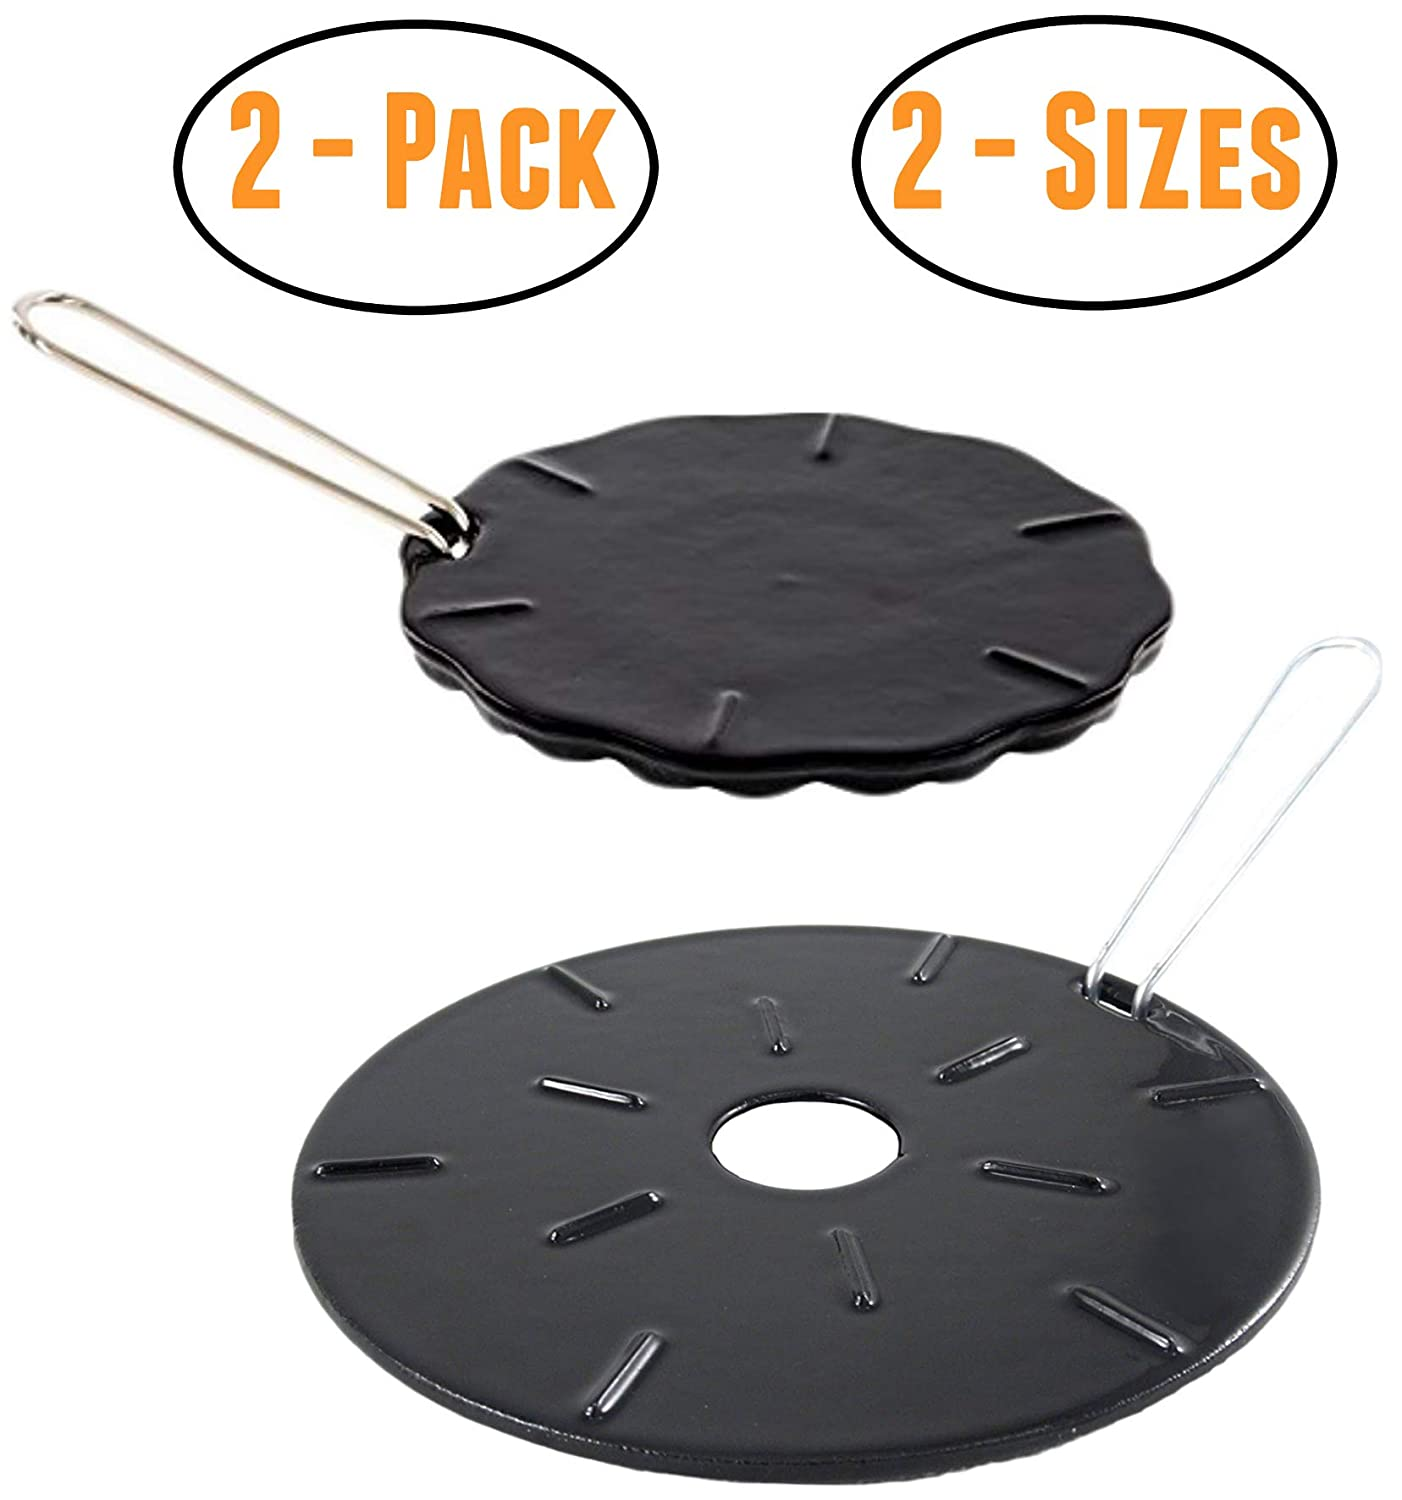 "Cast Iron Heat Diffuser Plate - Flame Reducer – 2 Pack – 2 Sizes Included – 8.25"" and 6.75"" Heat Diffuser Plates - Flame Guard - Simmer Ring - Heat Tamer"